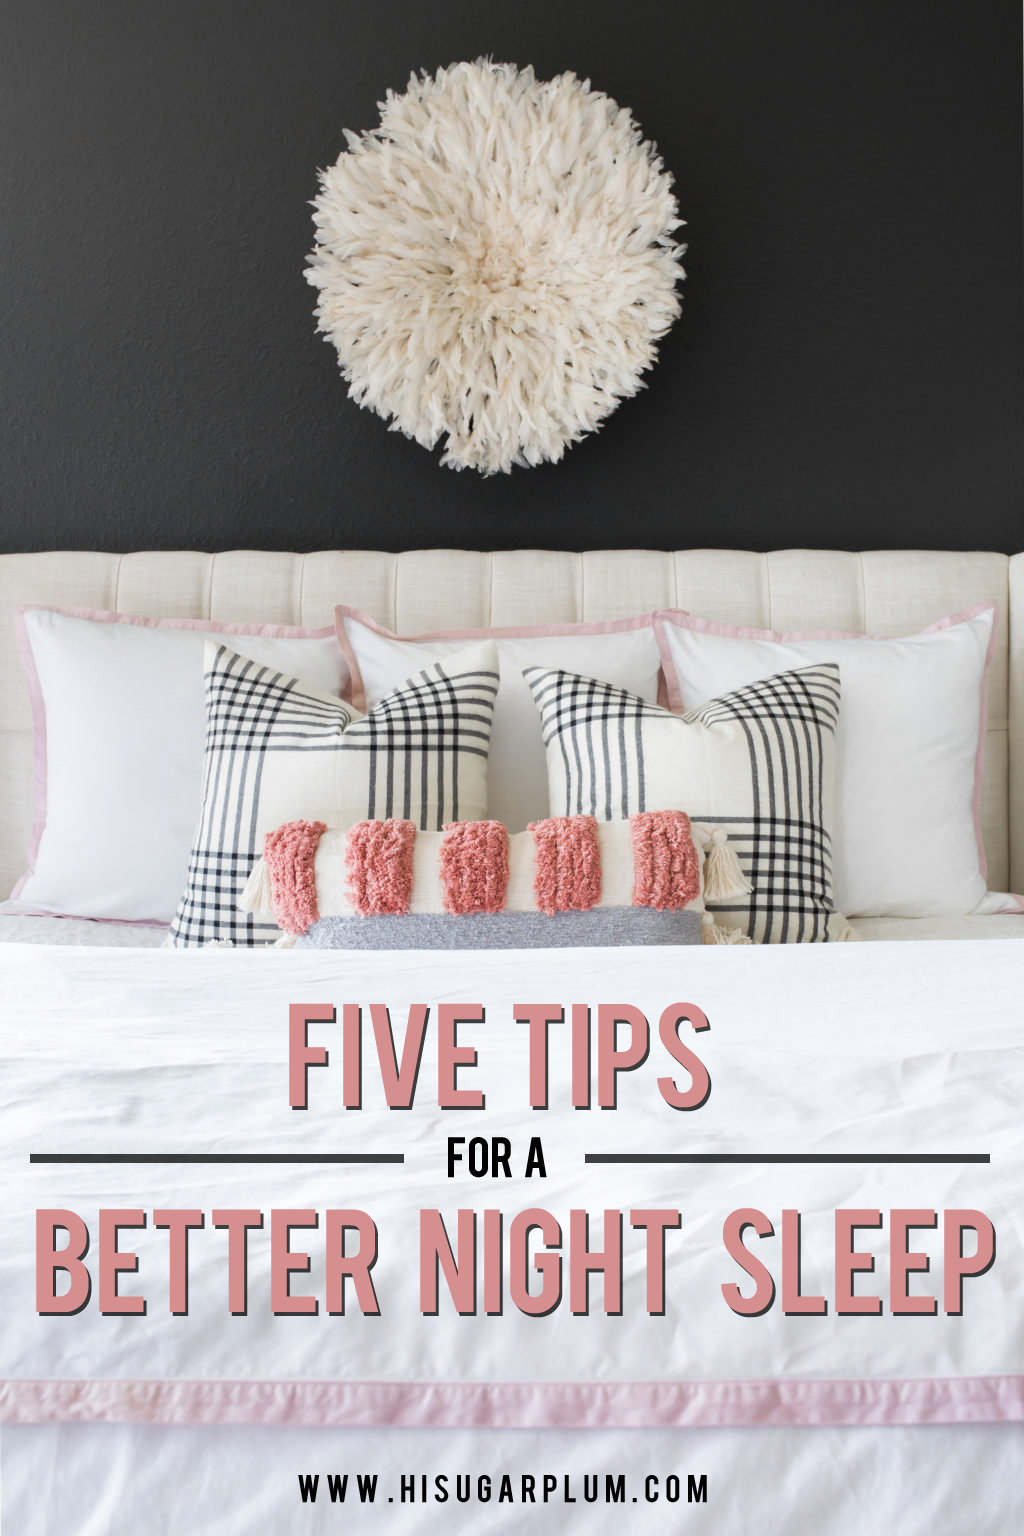 Five Tips to a Better Night Sleep